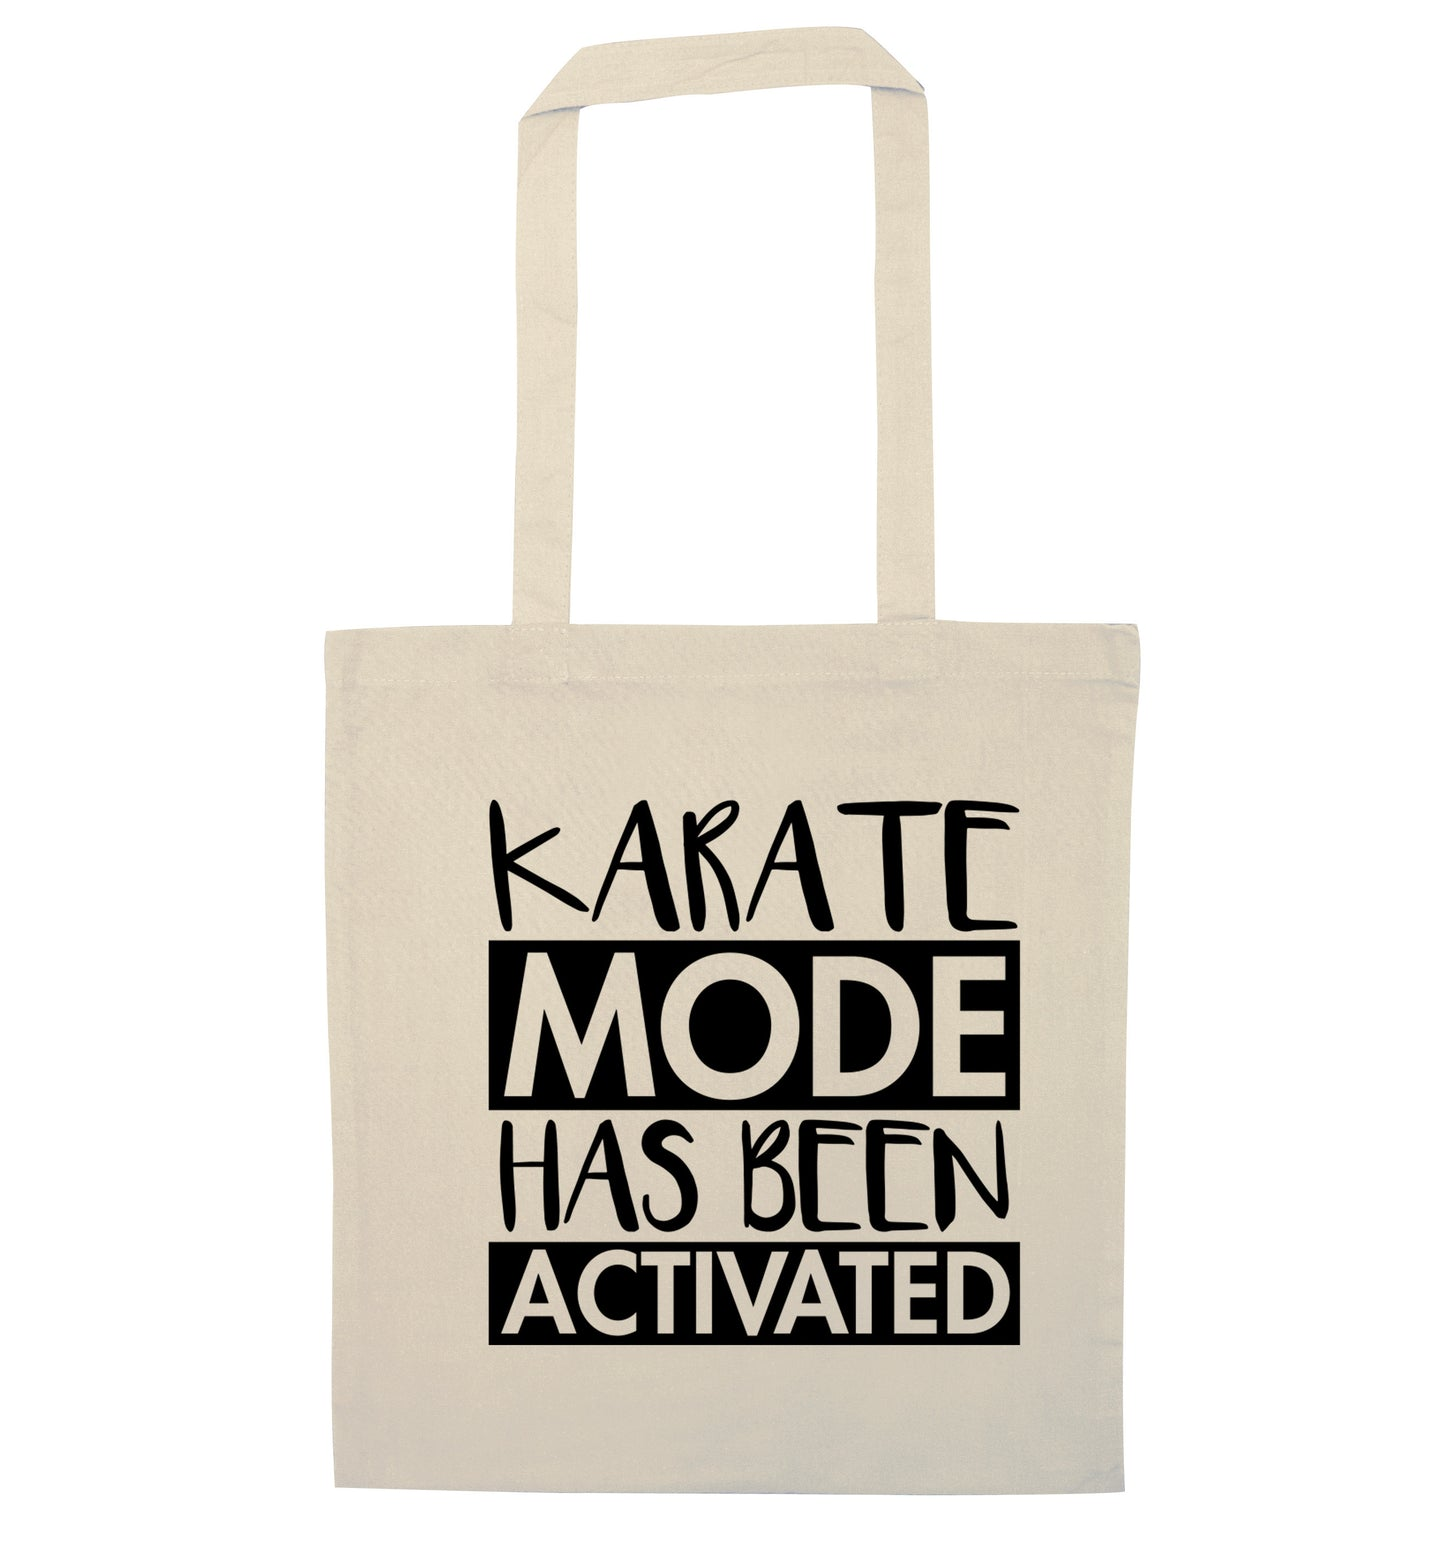 Karate mode activated natural tote bag